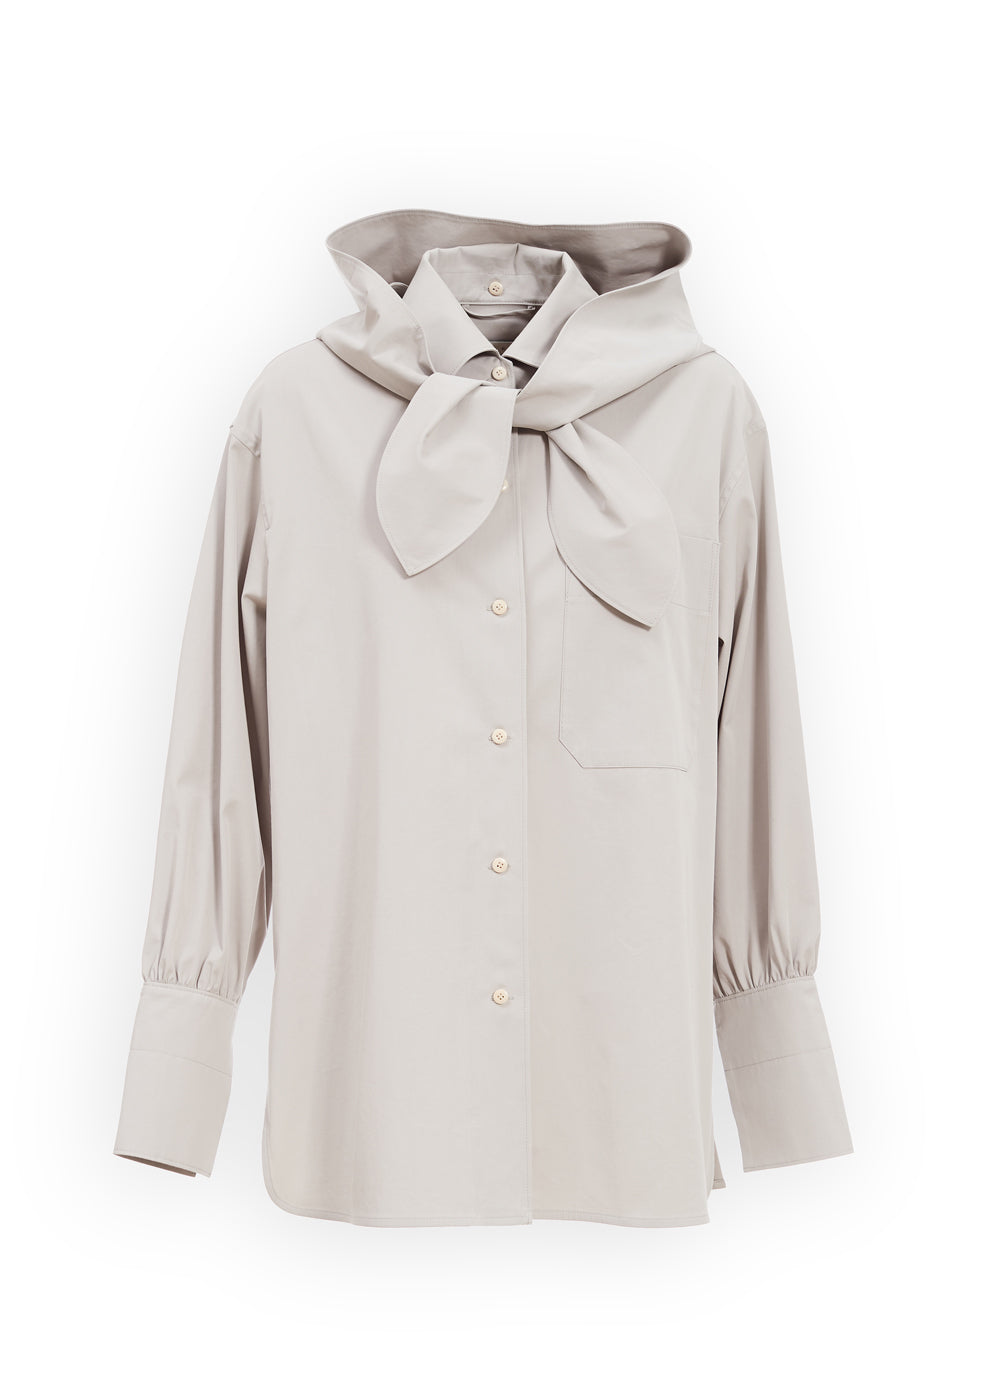 HOODY SHIRT BLOUSE GREY